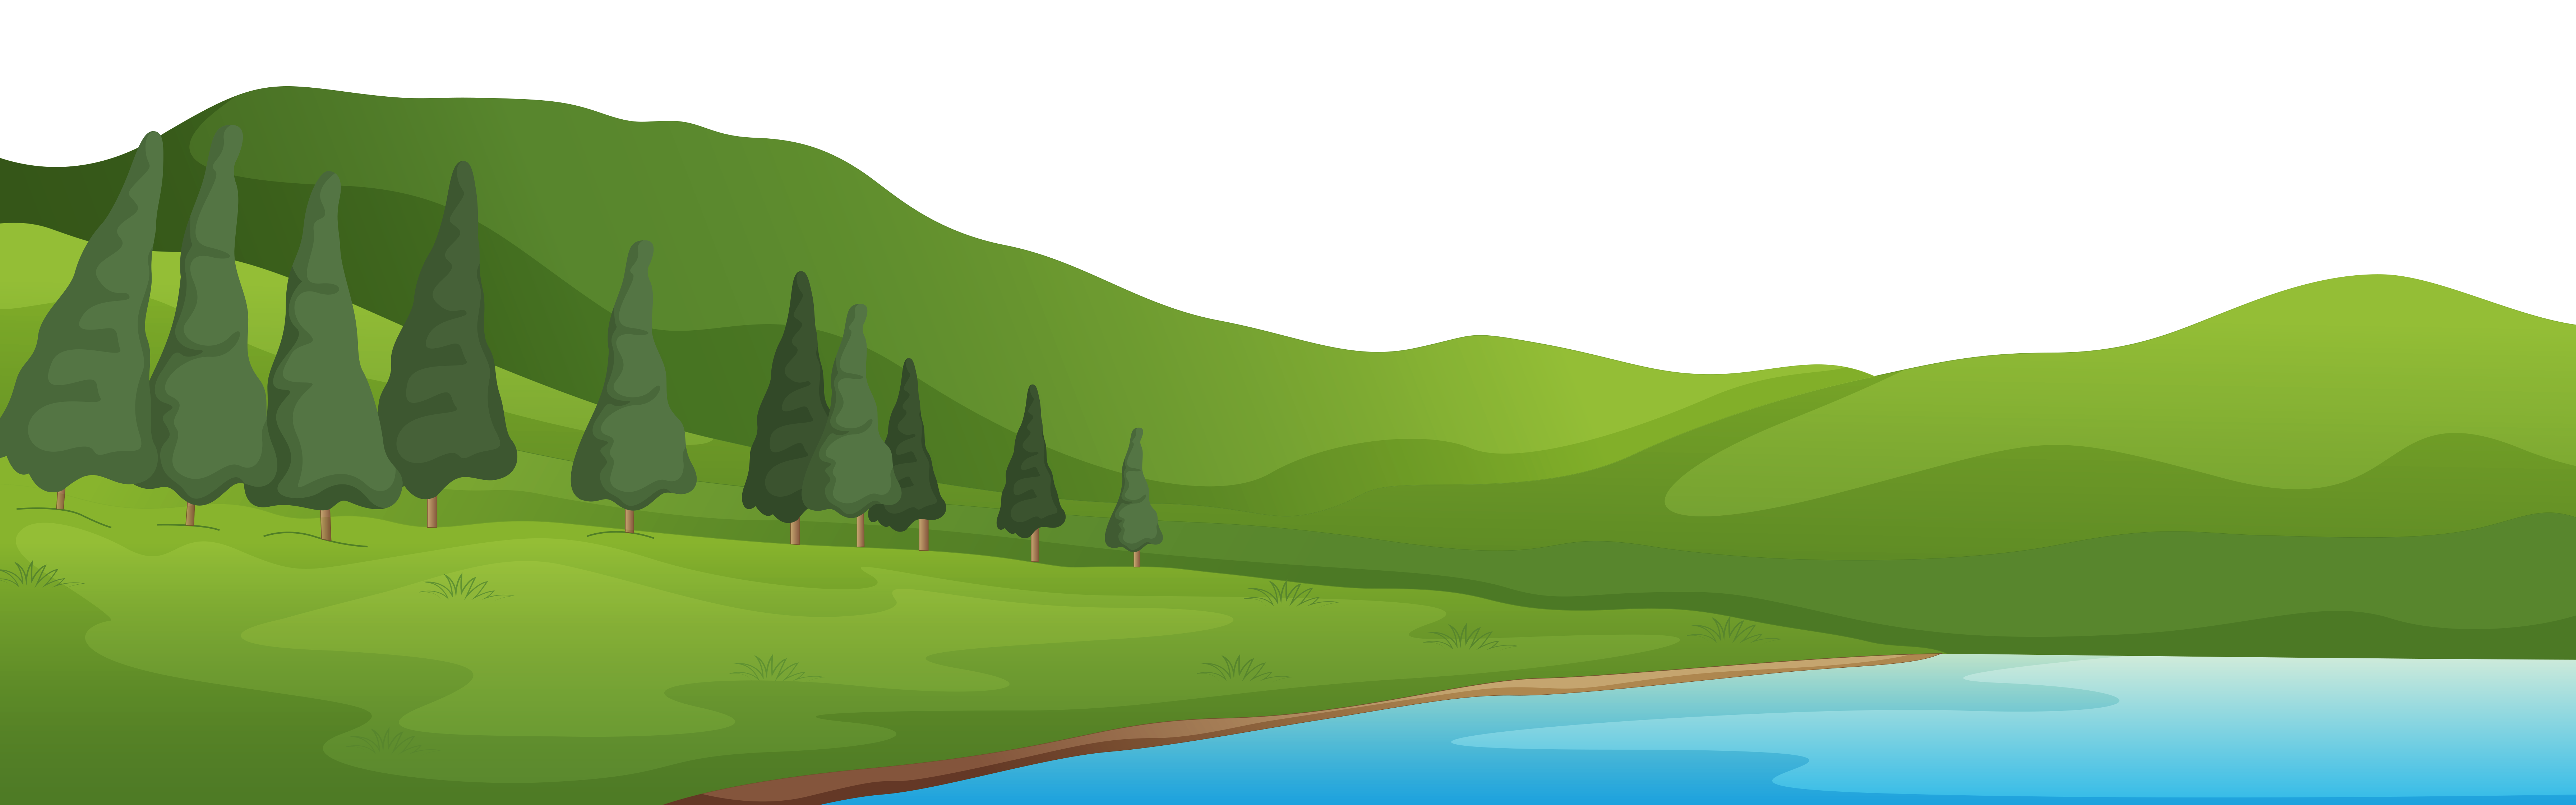 Lake scene background clipart freeuse stock Free mountain clip art clipart 4 clipartcow | 그래픽 디자인 ... freeuse stock